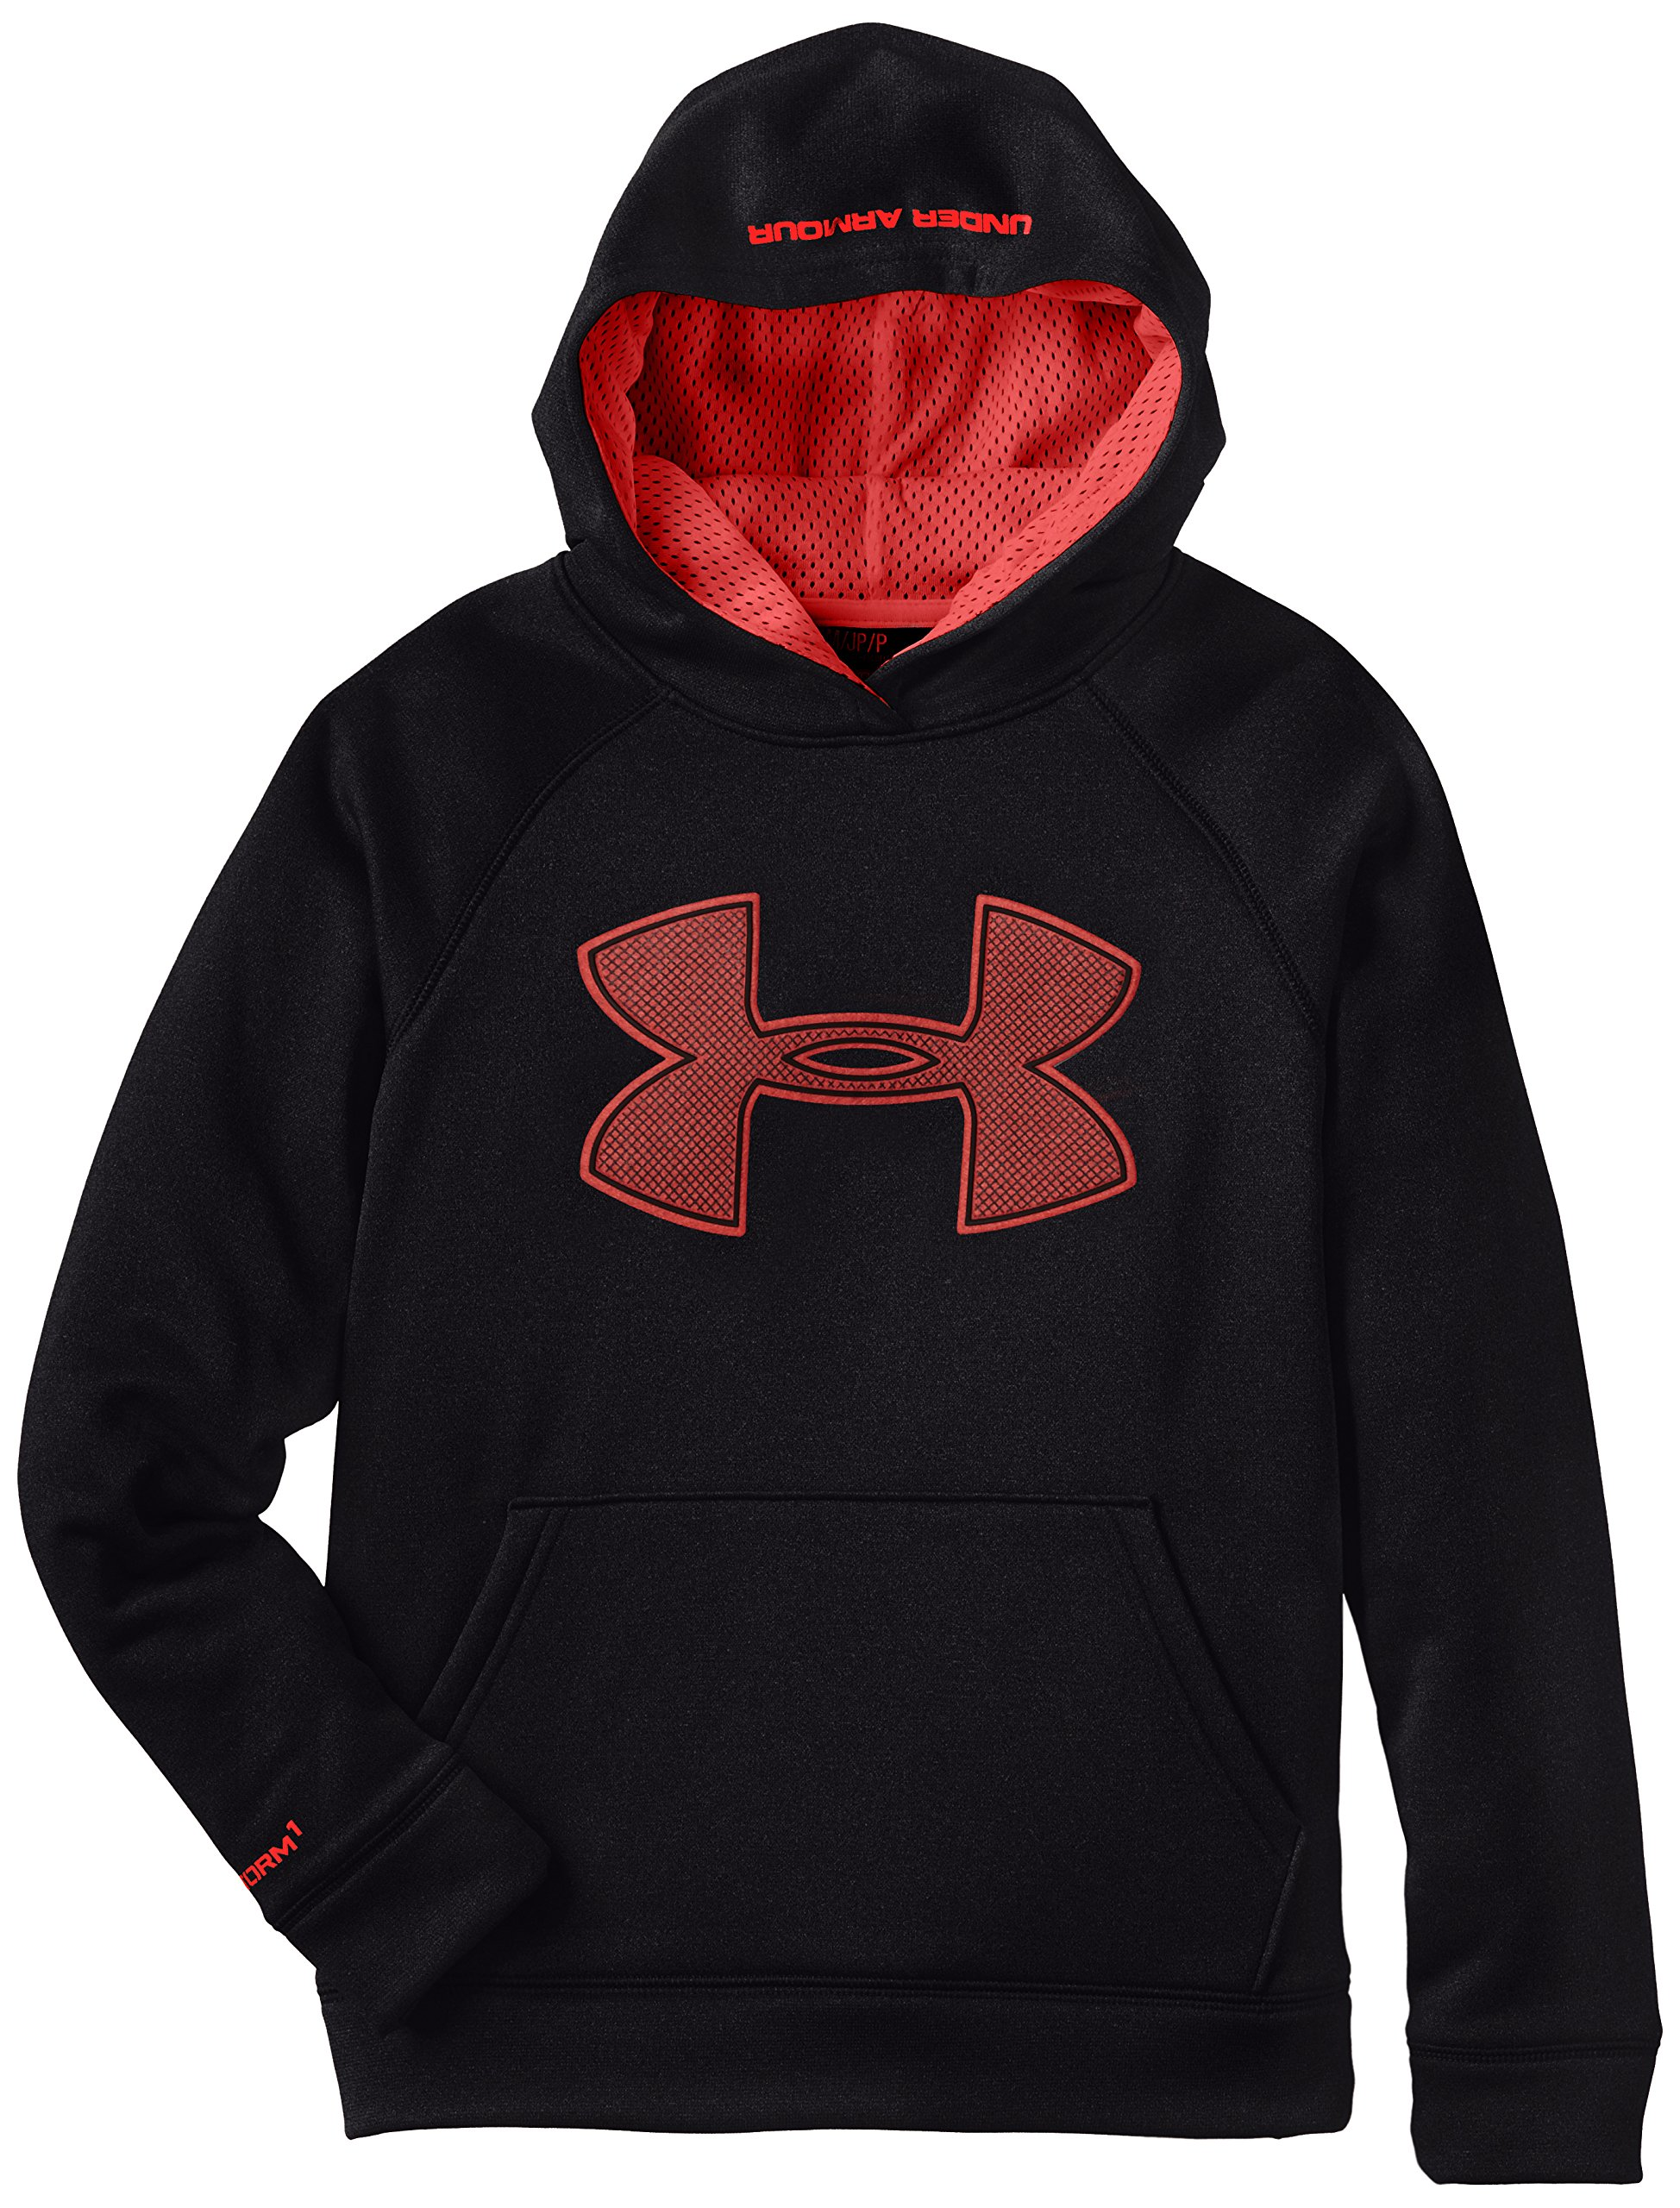 Under Armour Boys' Fleece Storm Big Logo Hoodie, Black /Risk Red, Youth X-Small by Under Armour